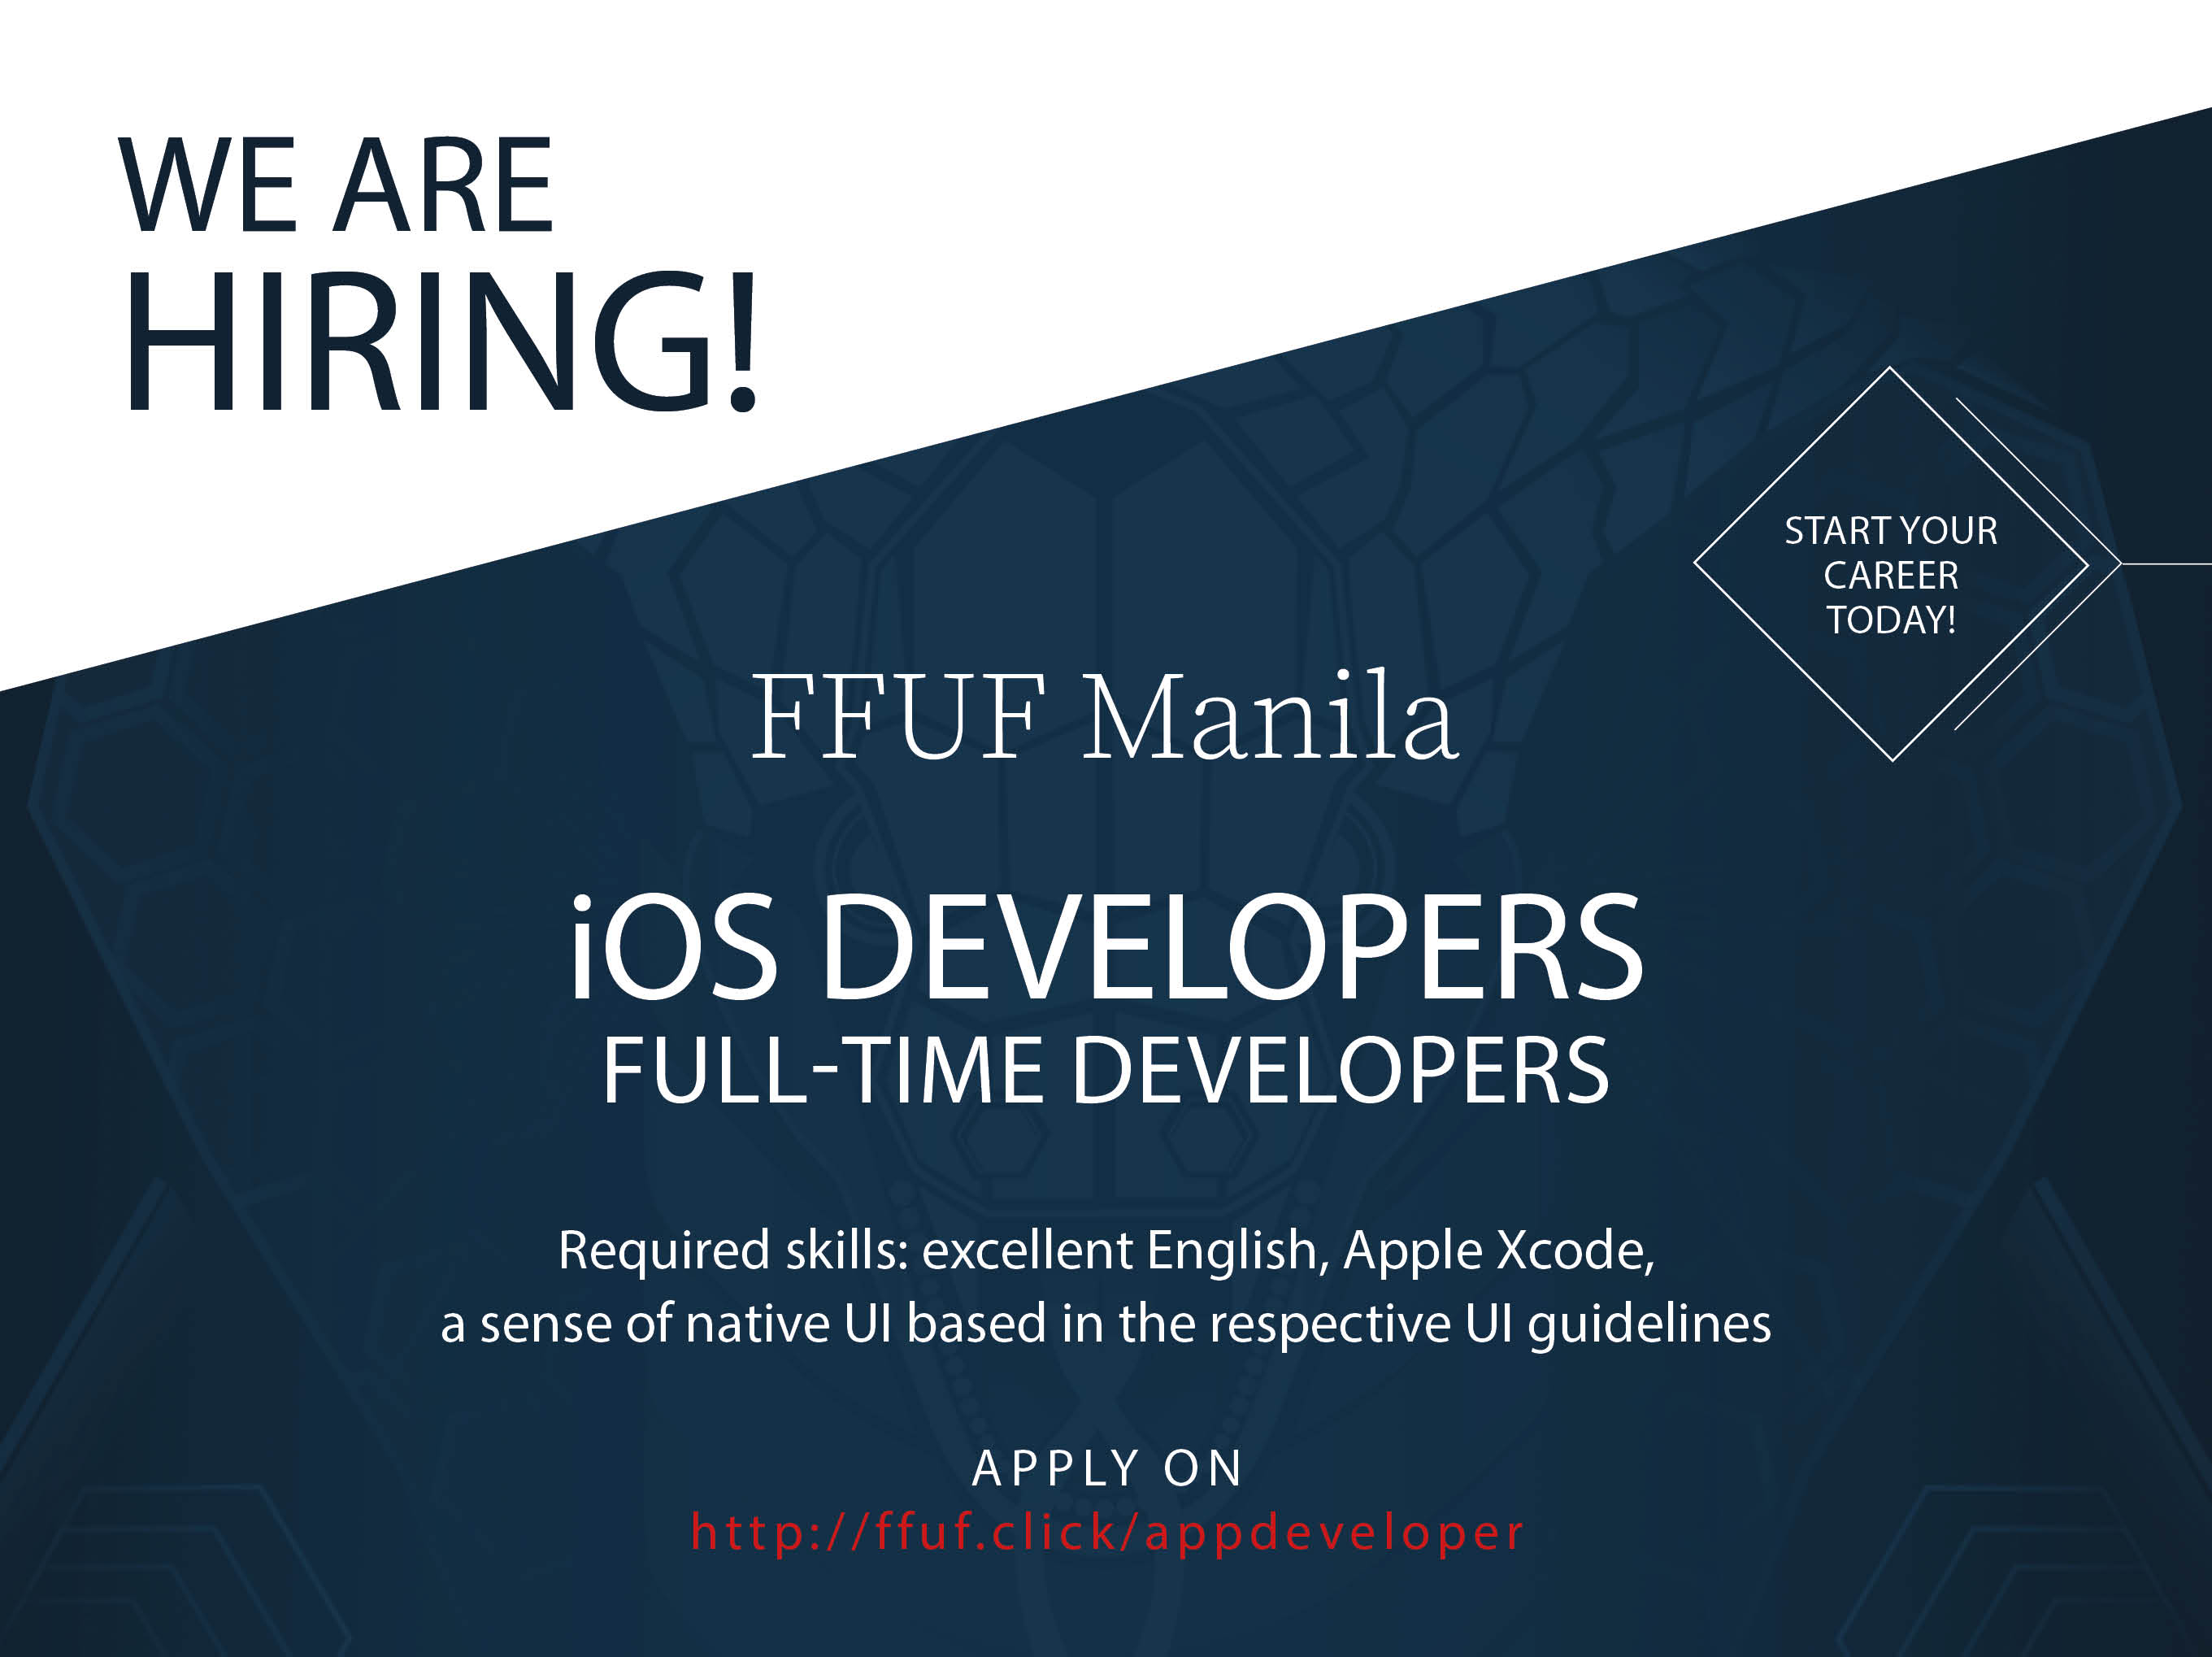 Ios Developer from FFUF Manila Inc.